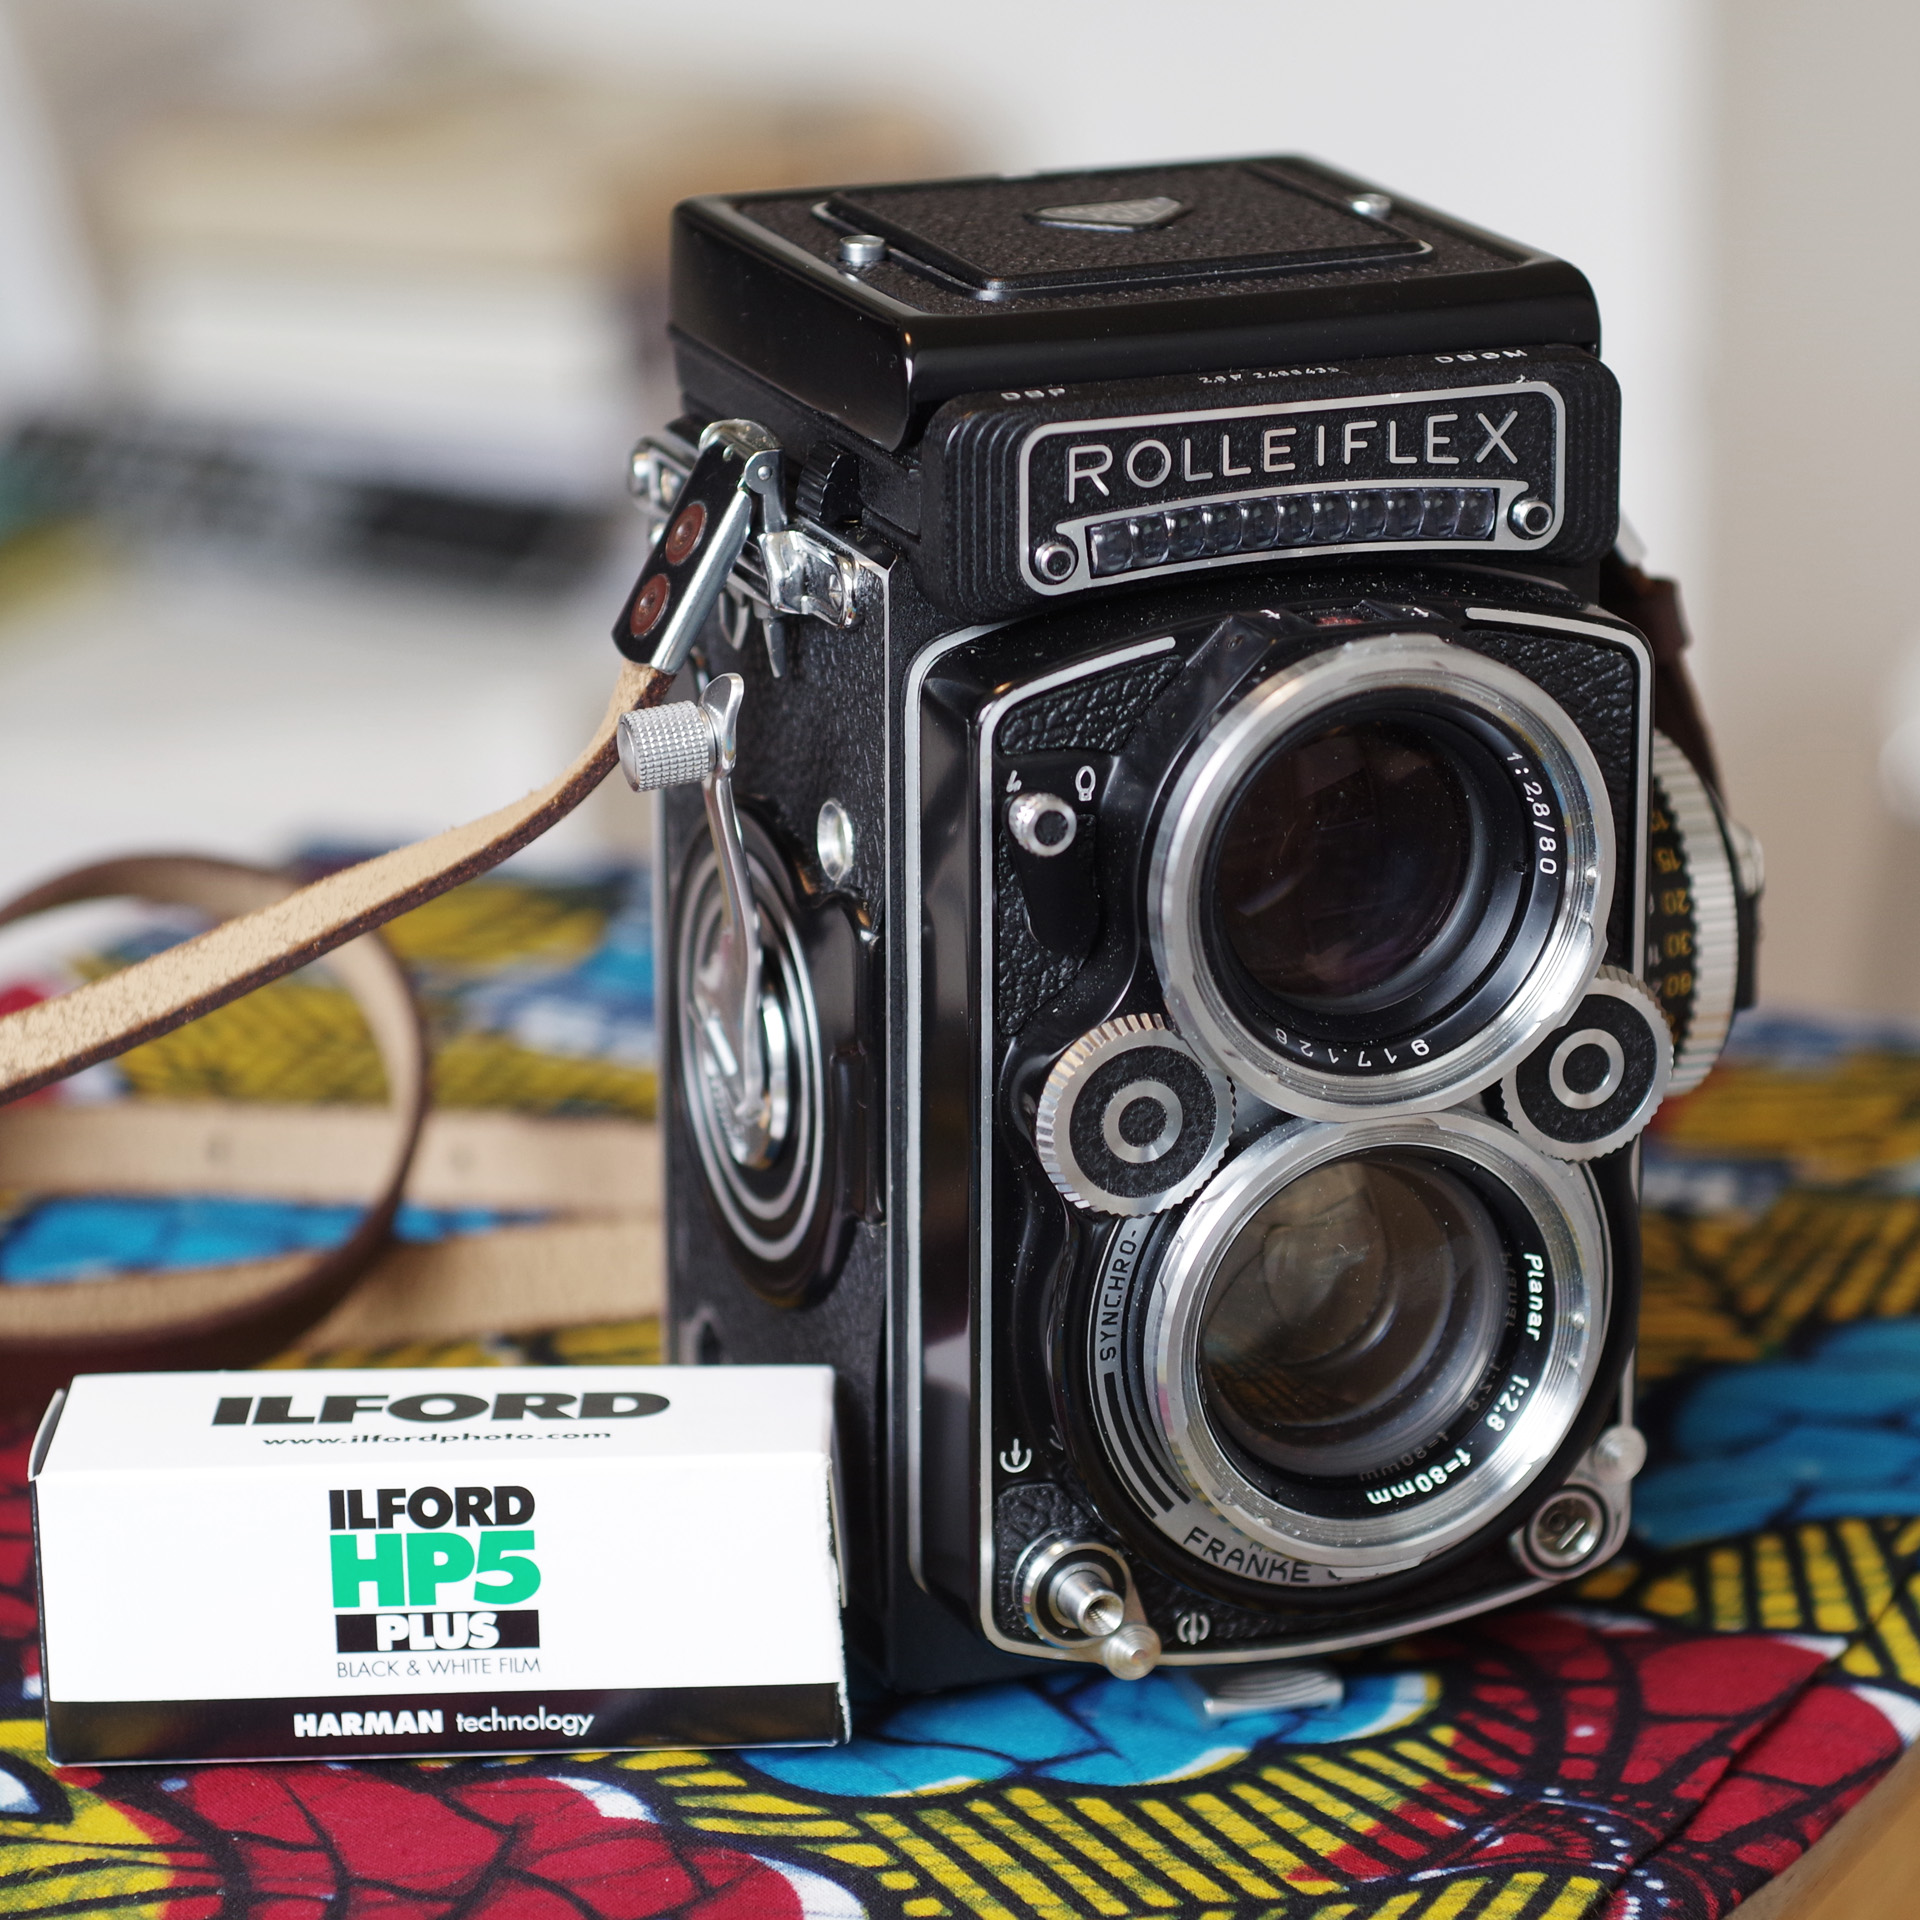 A Rolleiflex and some film